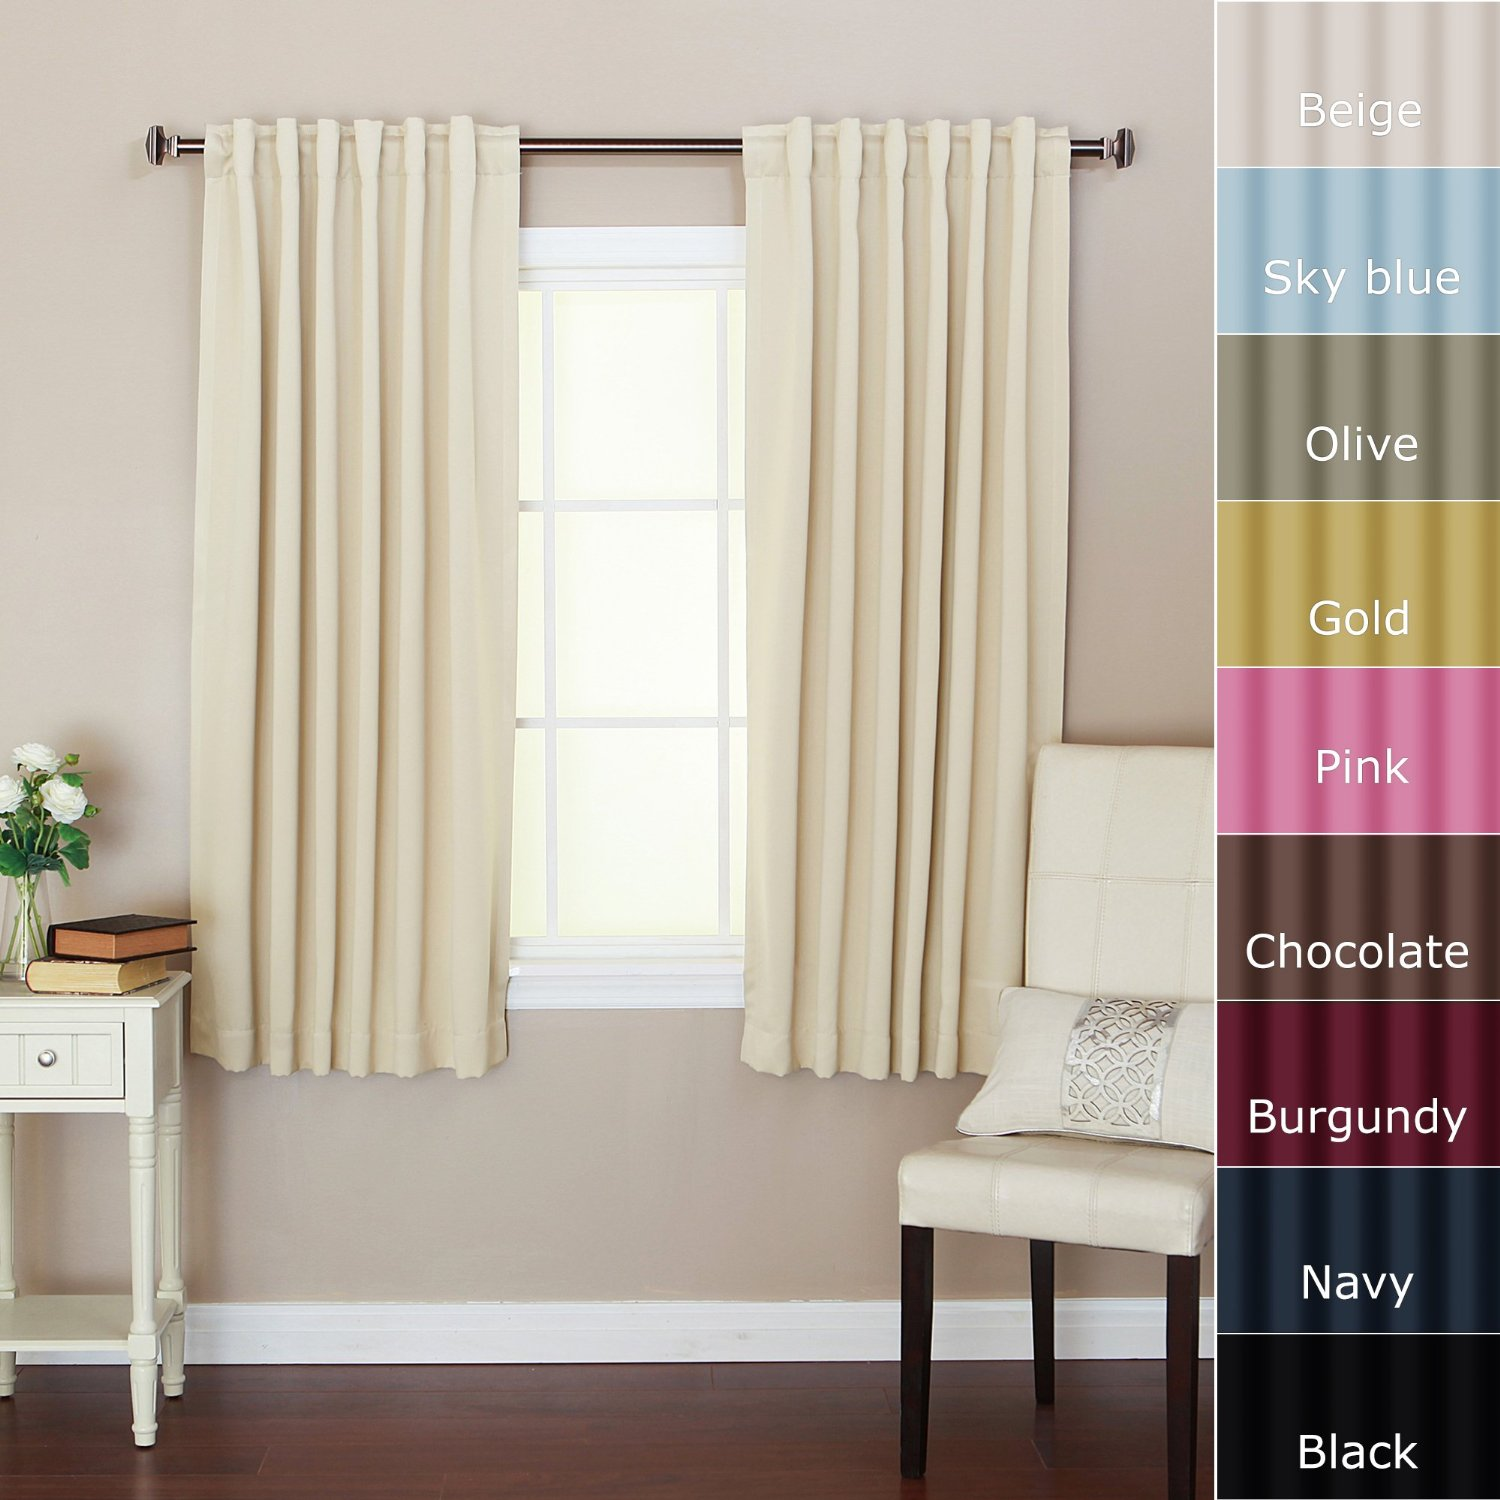 Blackout Curtains Cheap | Curtains Blockout | Cheap Blackout Curtains